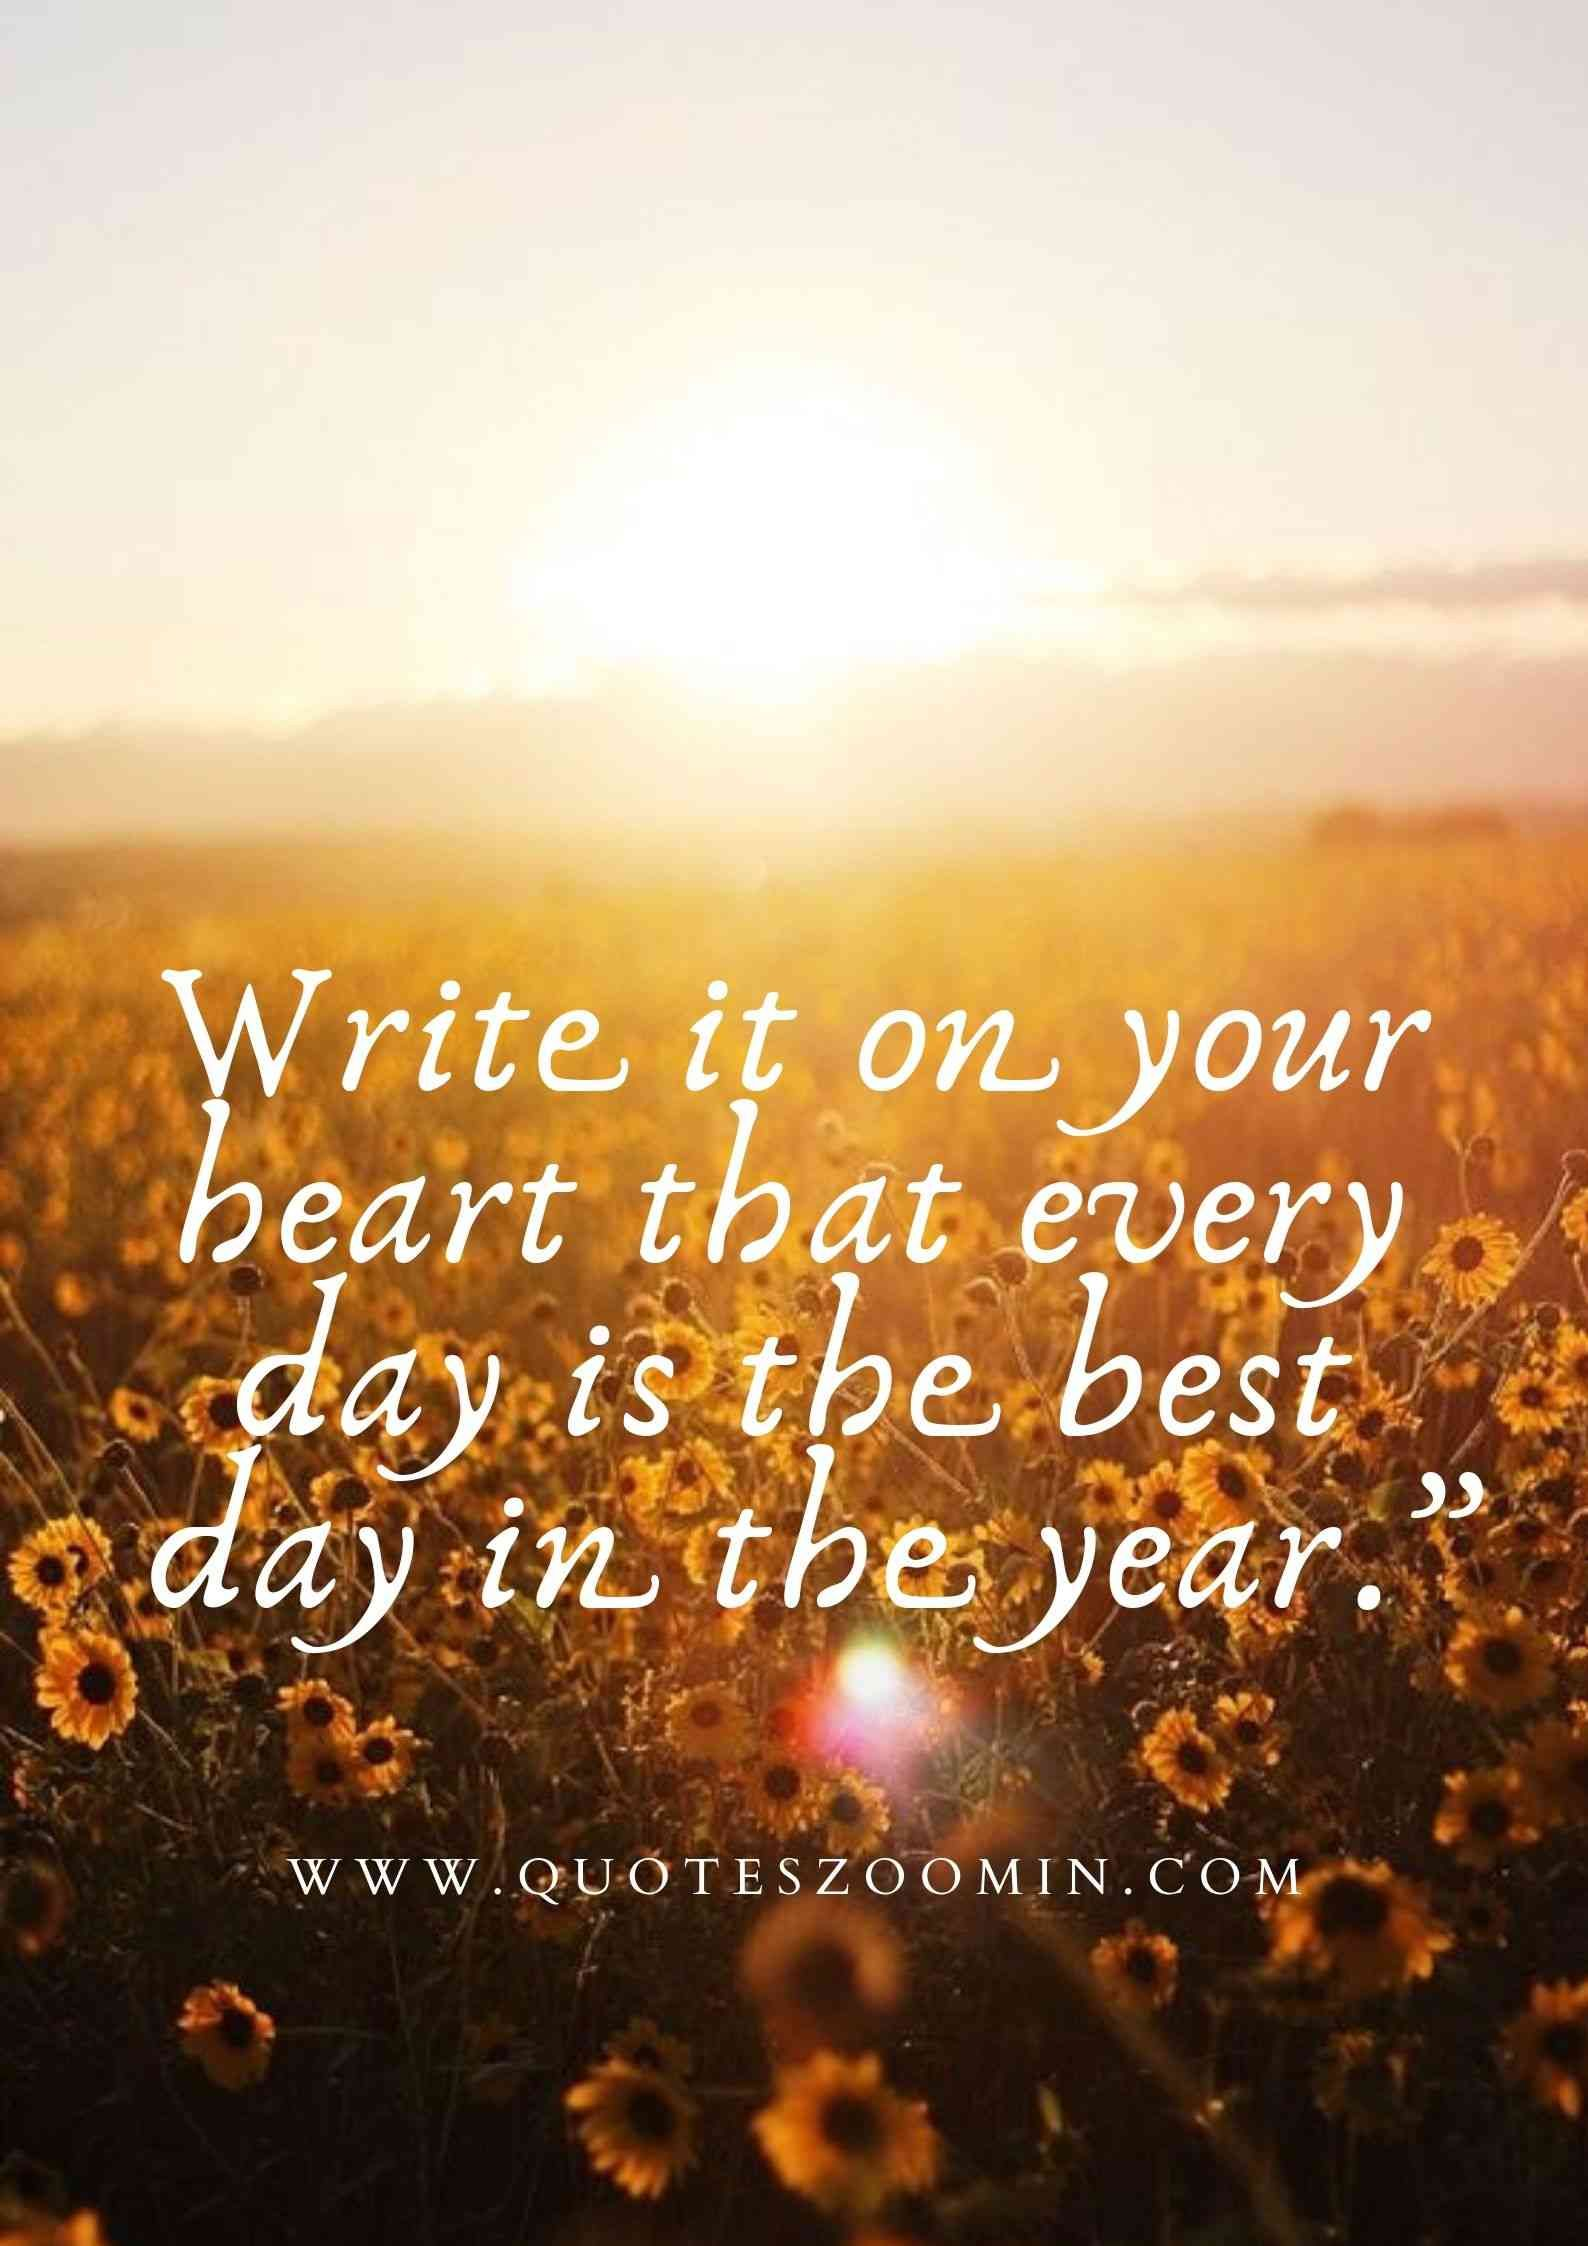 New year sayings and quotes 2020 for boyfriend and